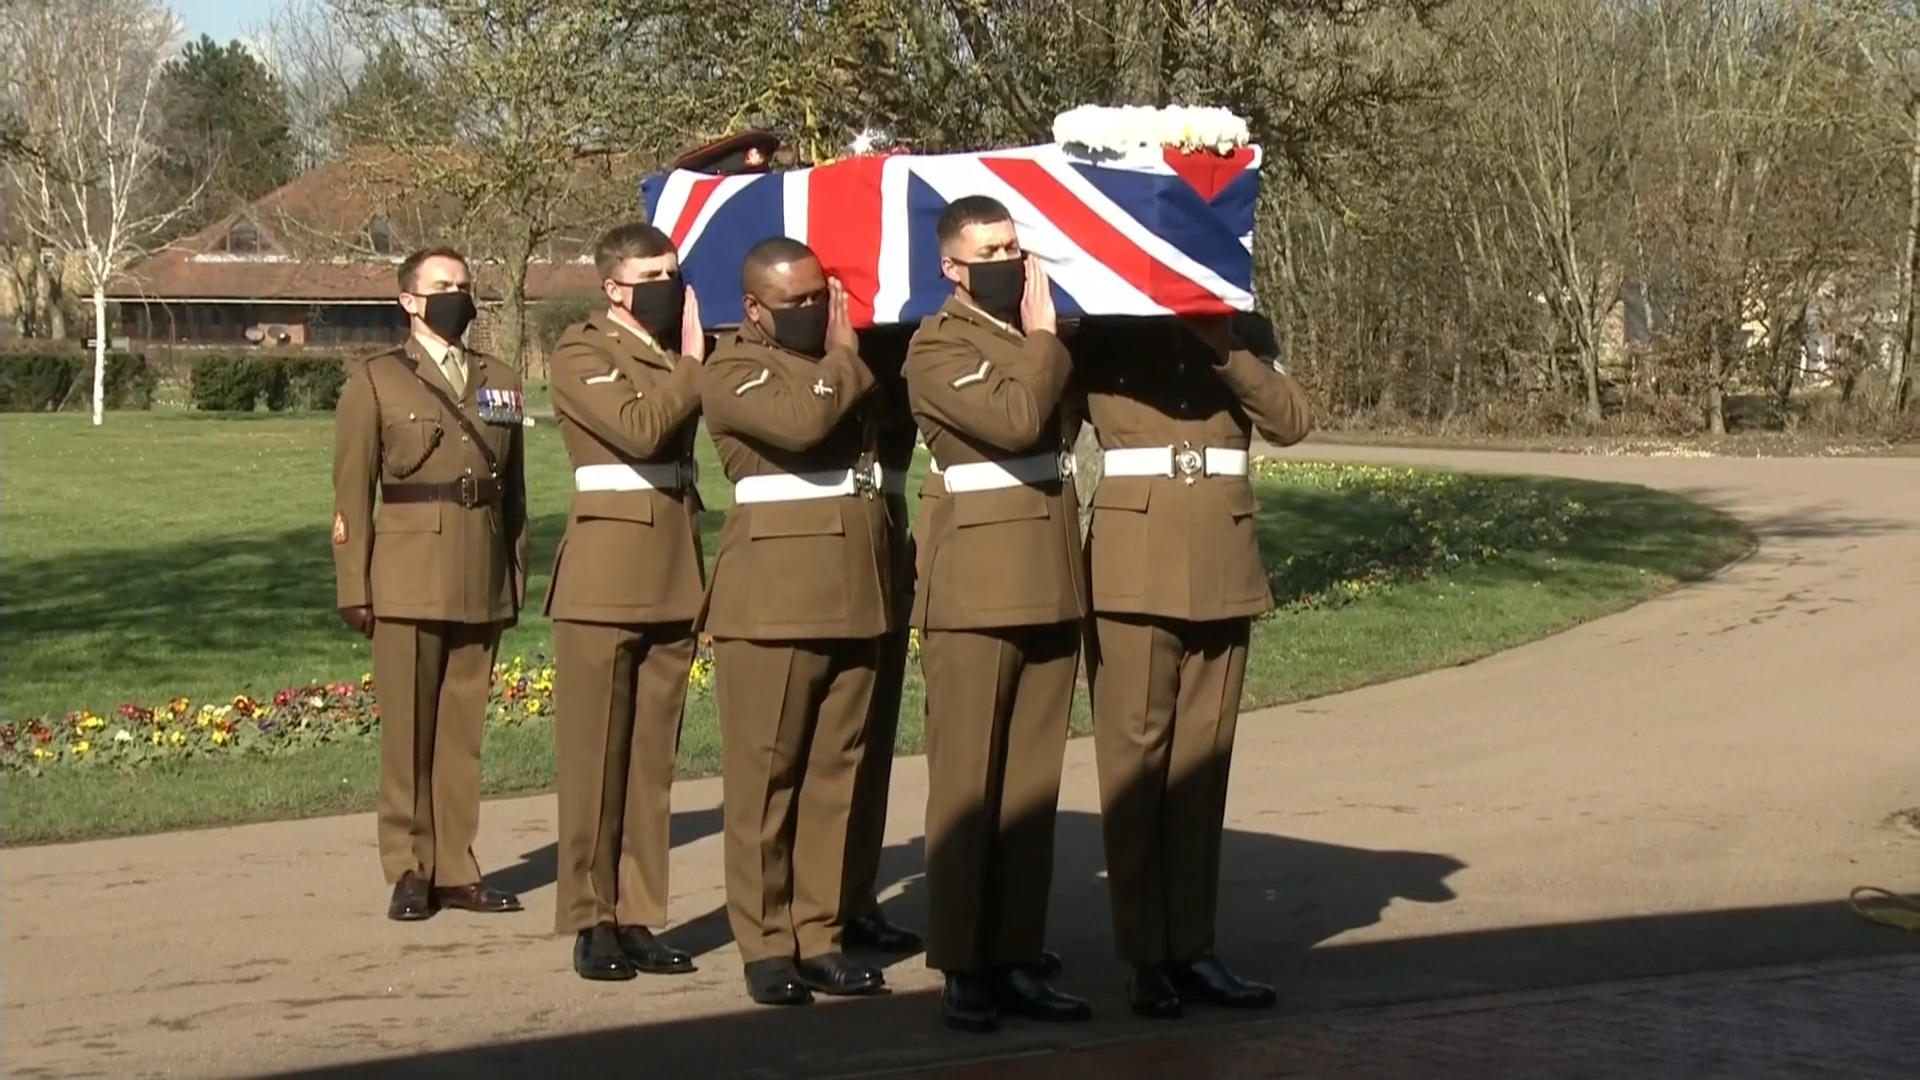 Tributes paid by family to Captain Sir Tom Moore at funeral service - channel 4